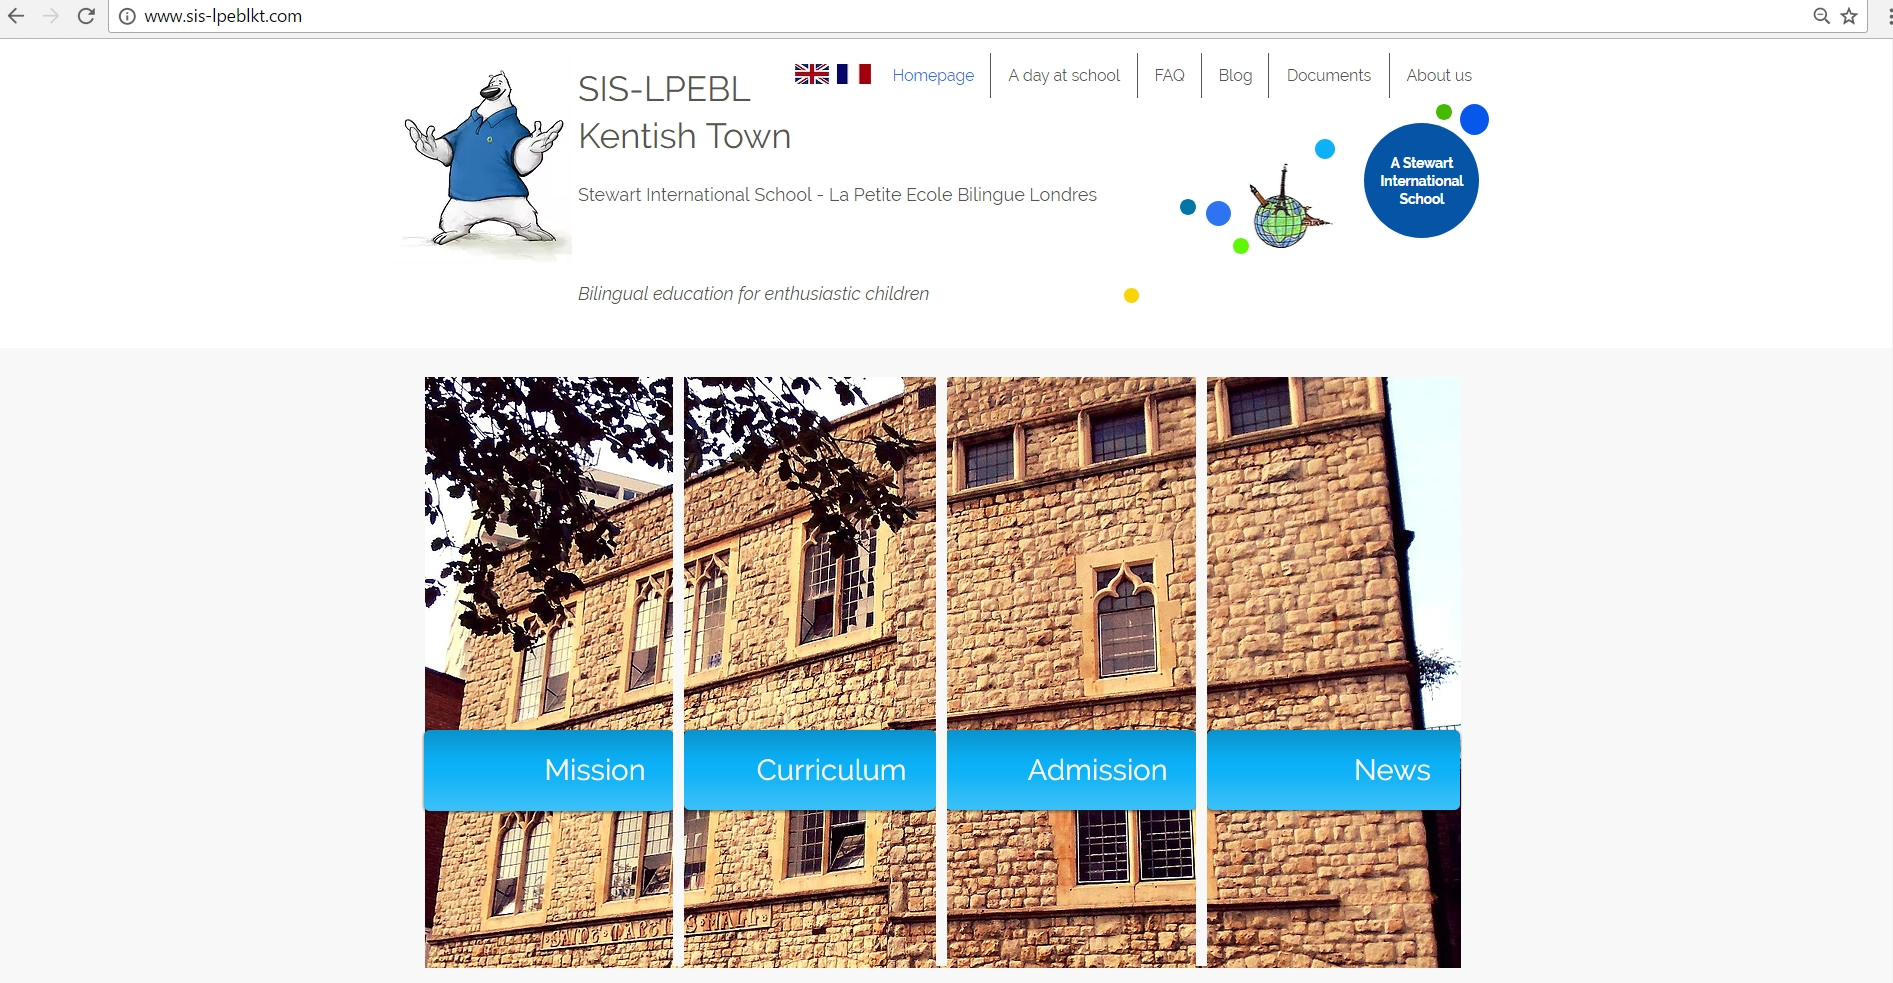 Ecole Bilingue À Londres Kt - French Bilingual School In London Incredible L'ecole Bilingue School Calendar